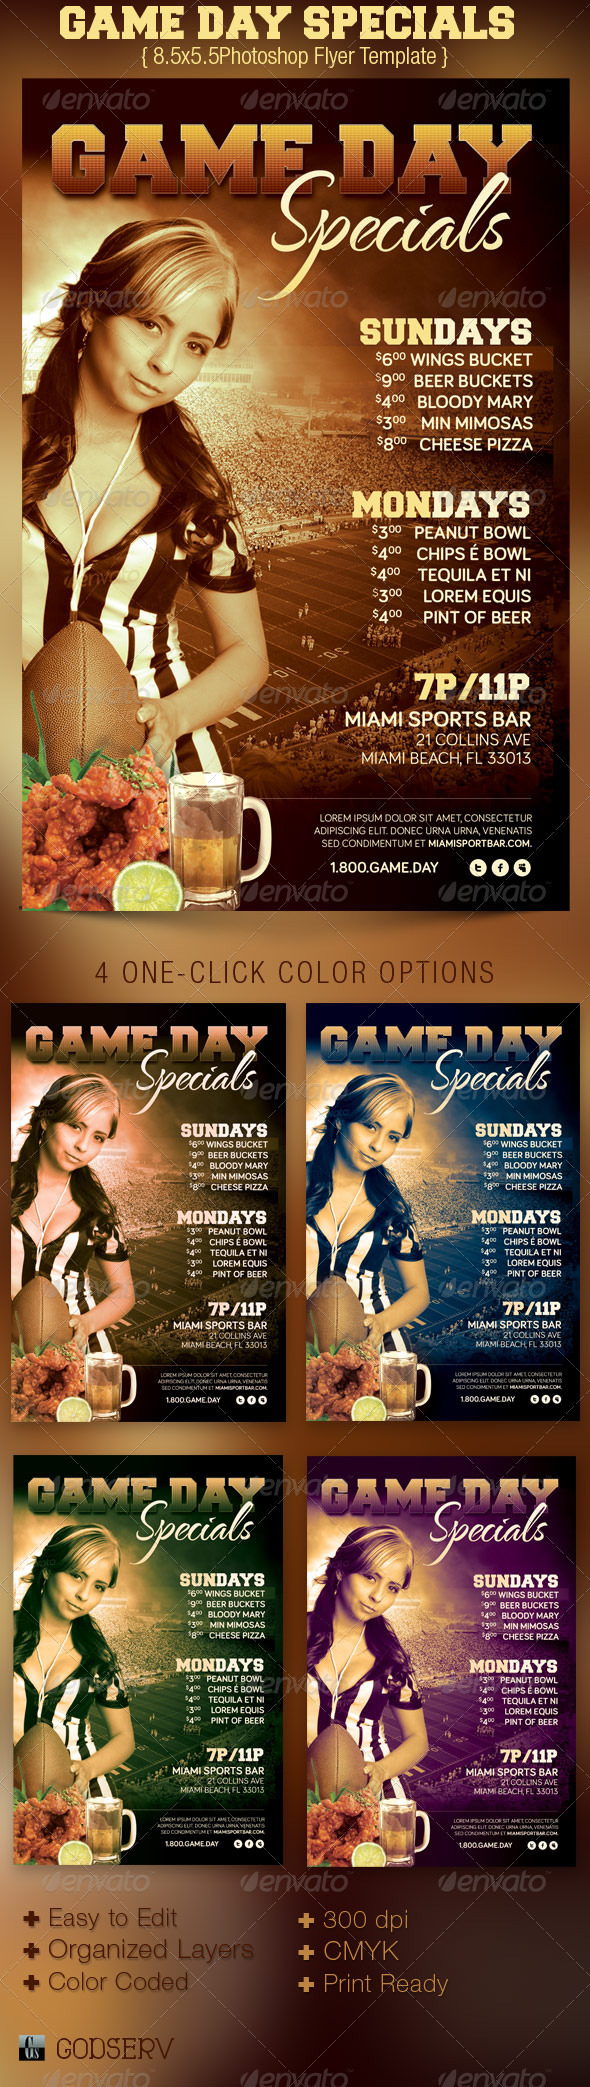 game day specials flyer template